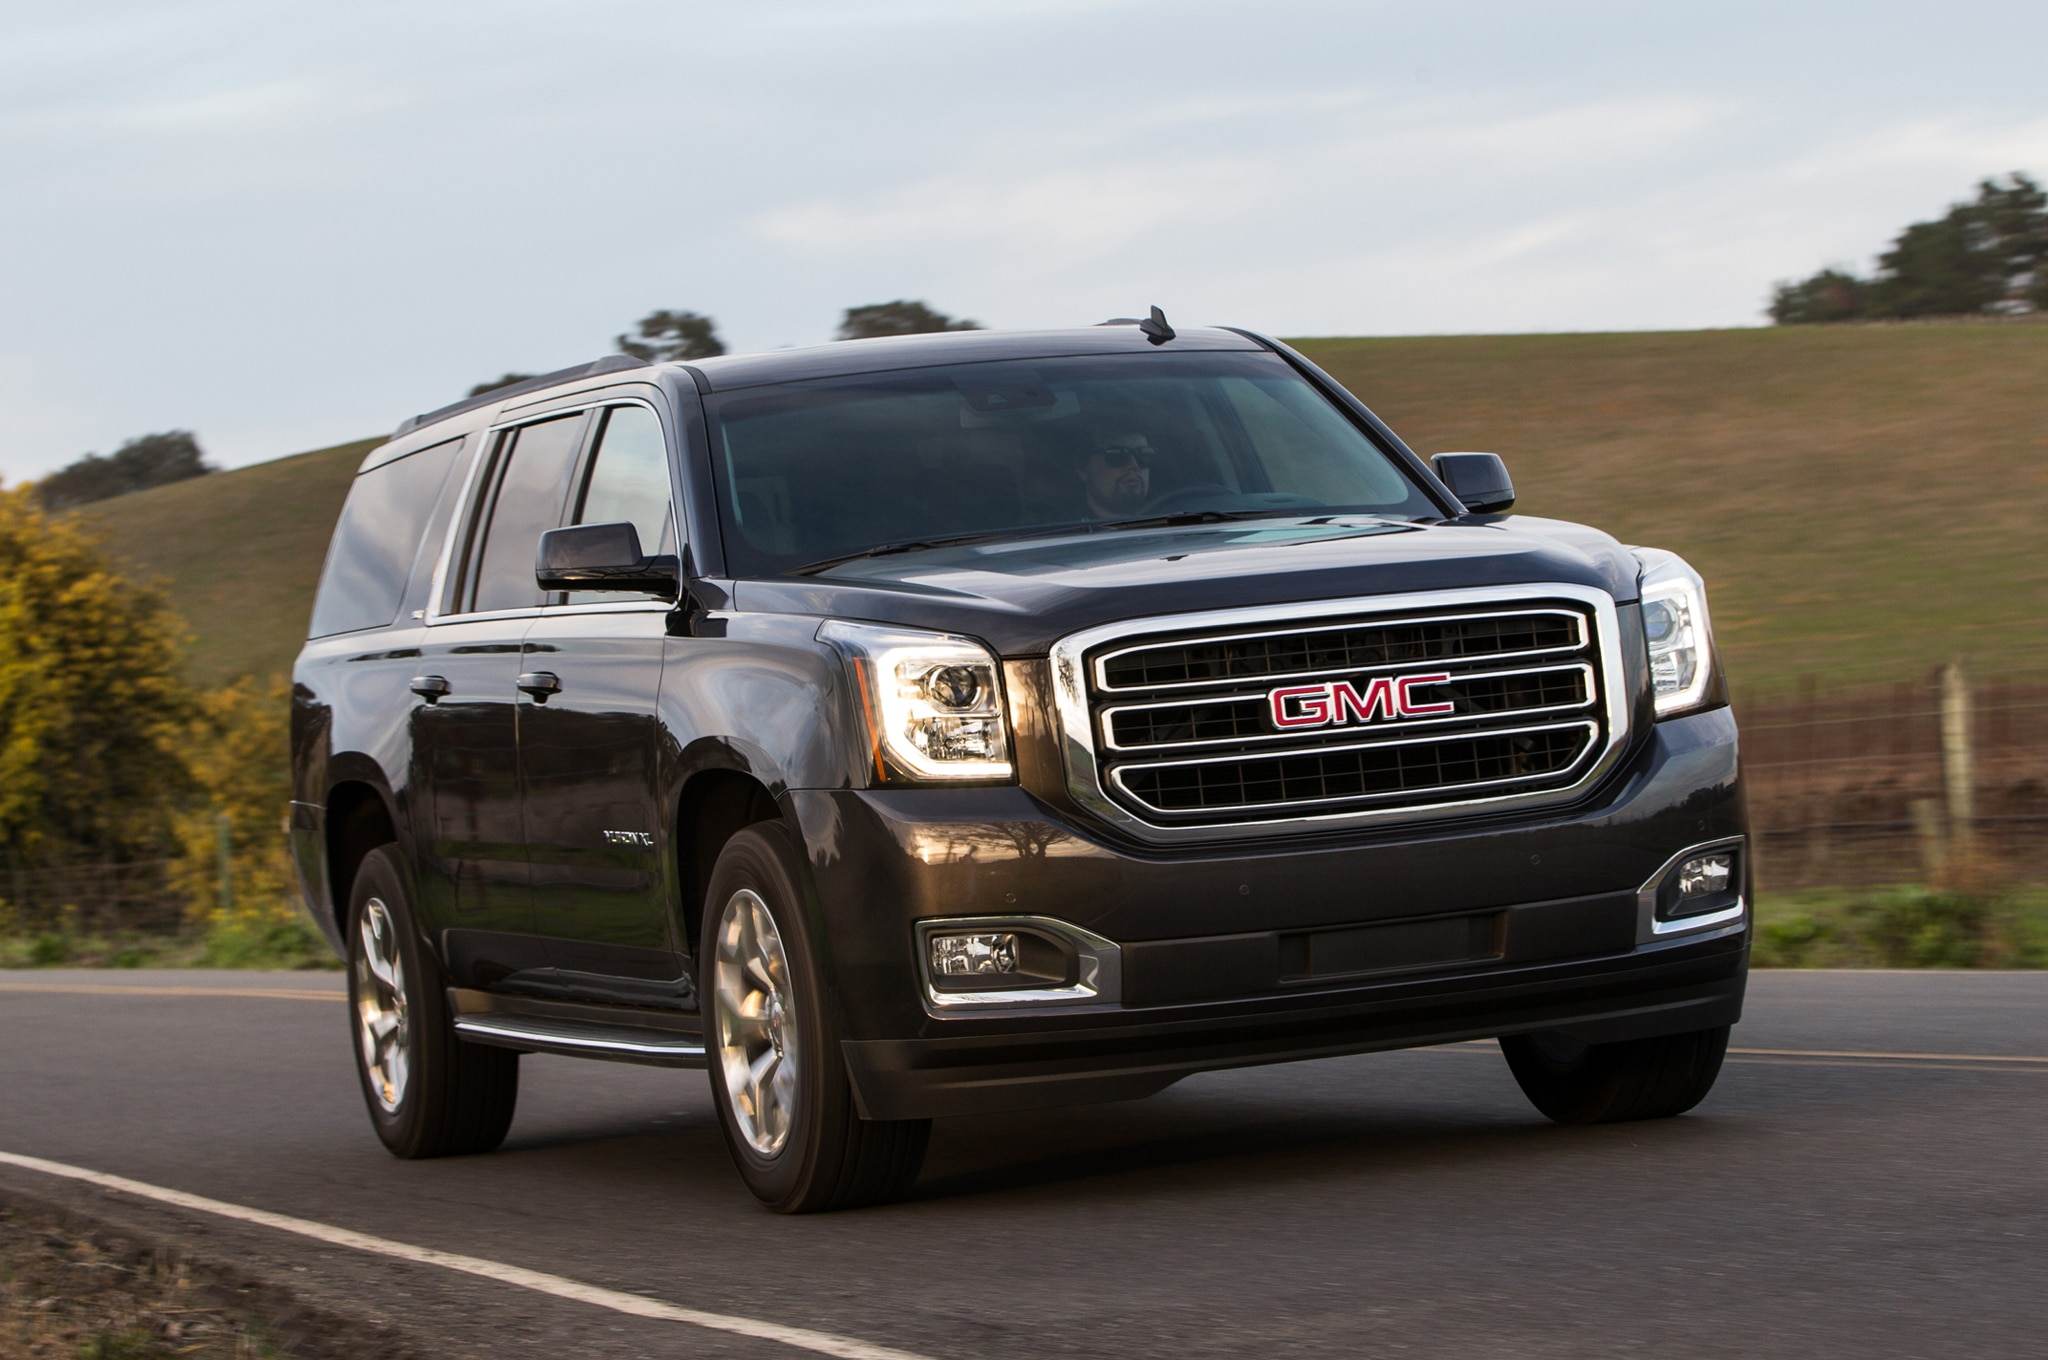 2015 gmc sierra yukon denali fuel economy improves with eight speed. Black Bedroom Furniture Sets. Home Design Ideas